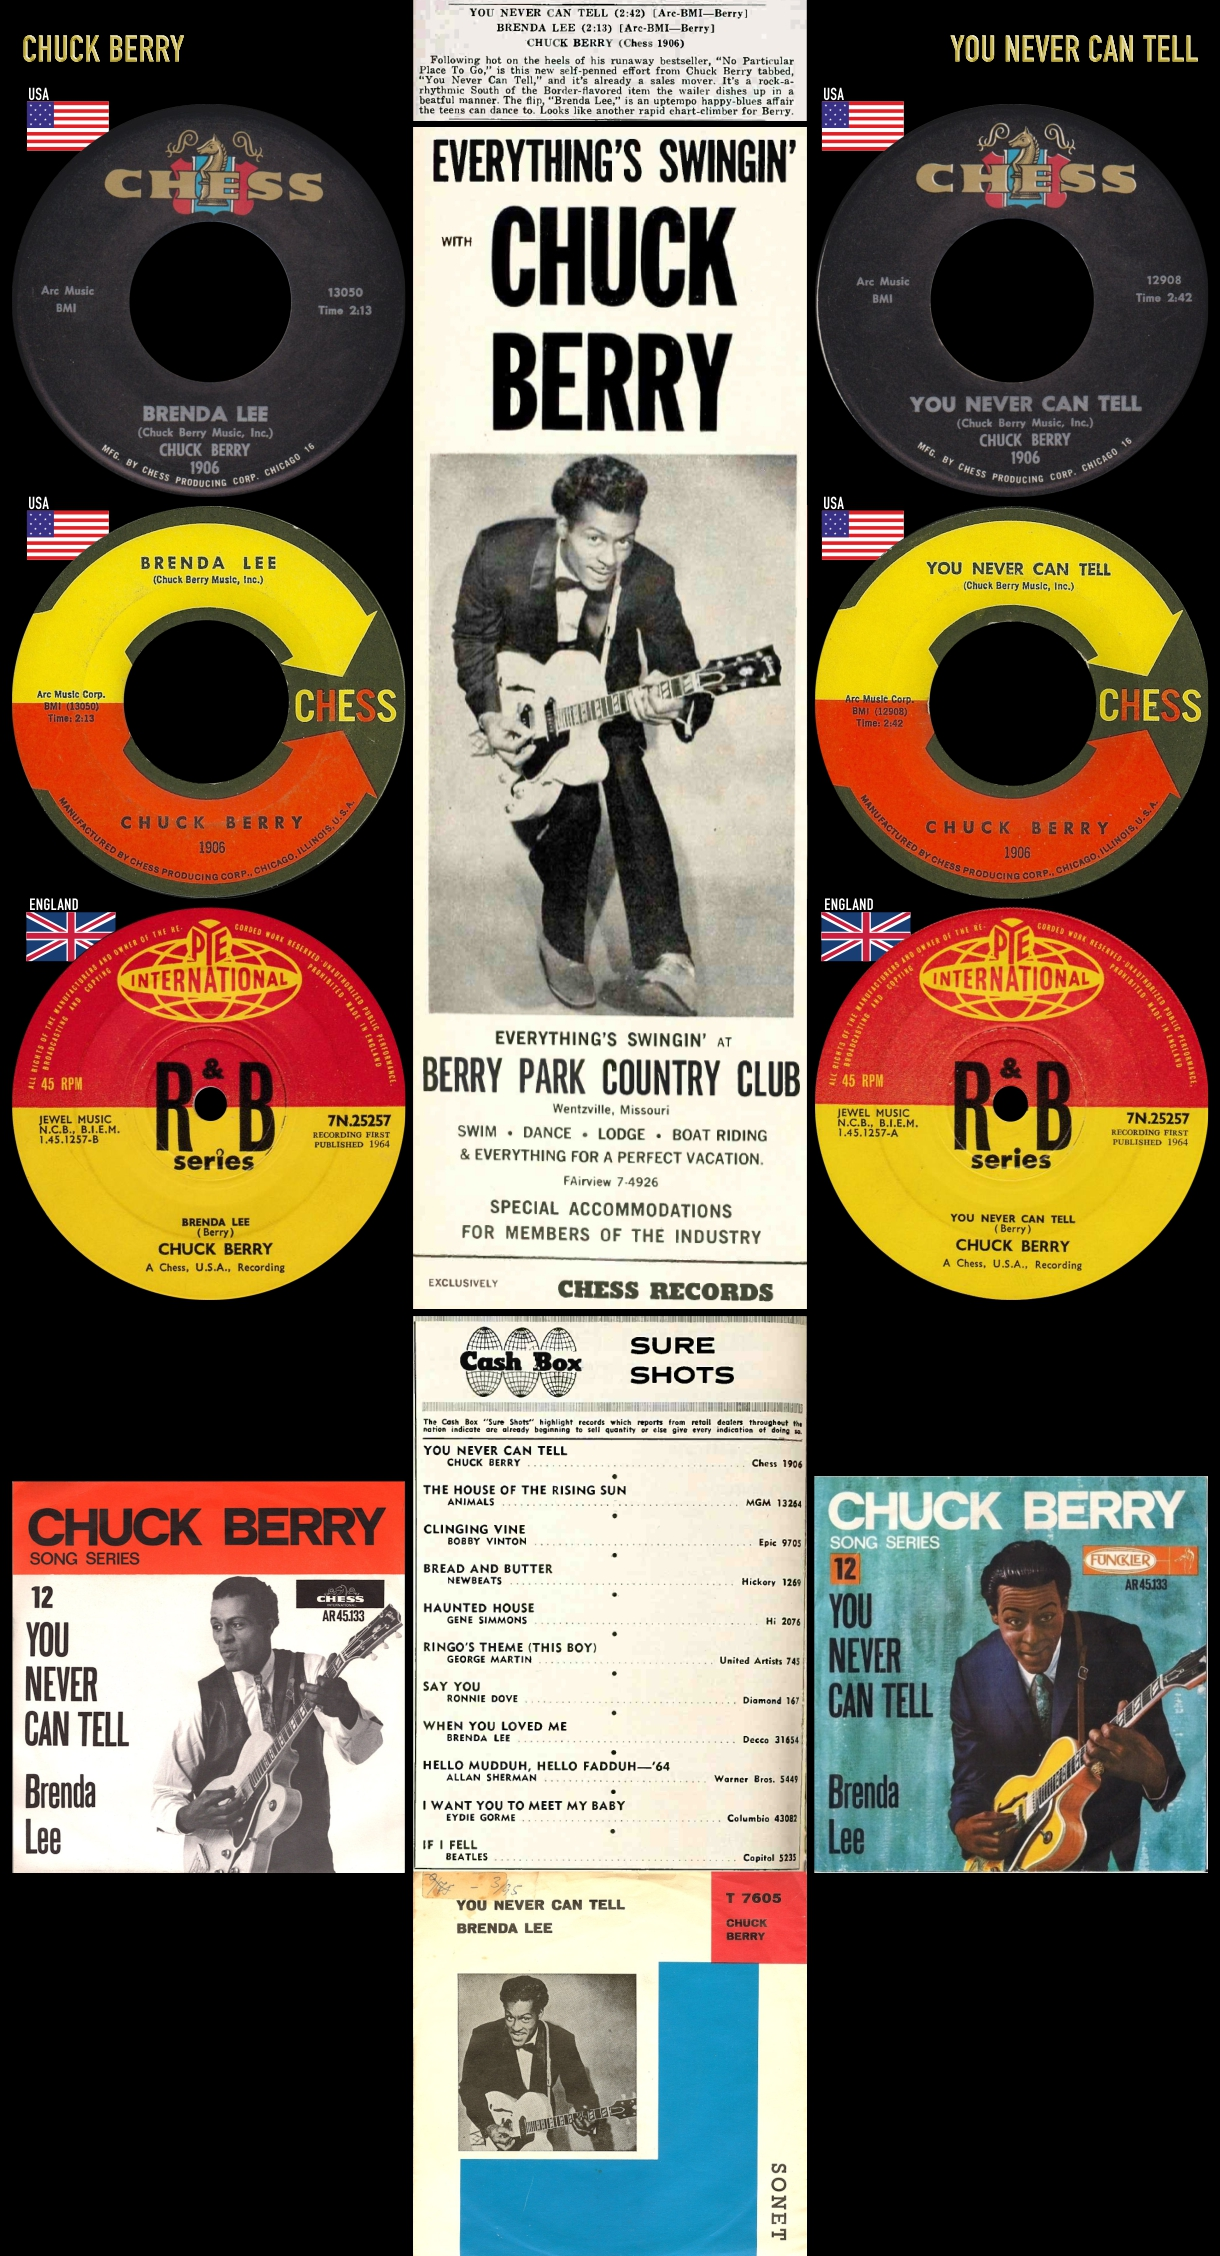 640801_Chuck Berry_You Never Can Tell